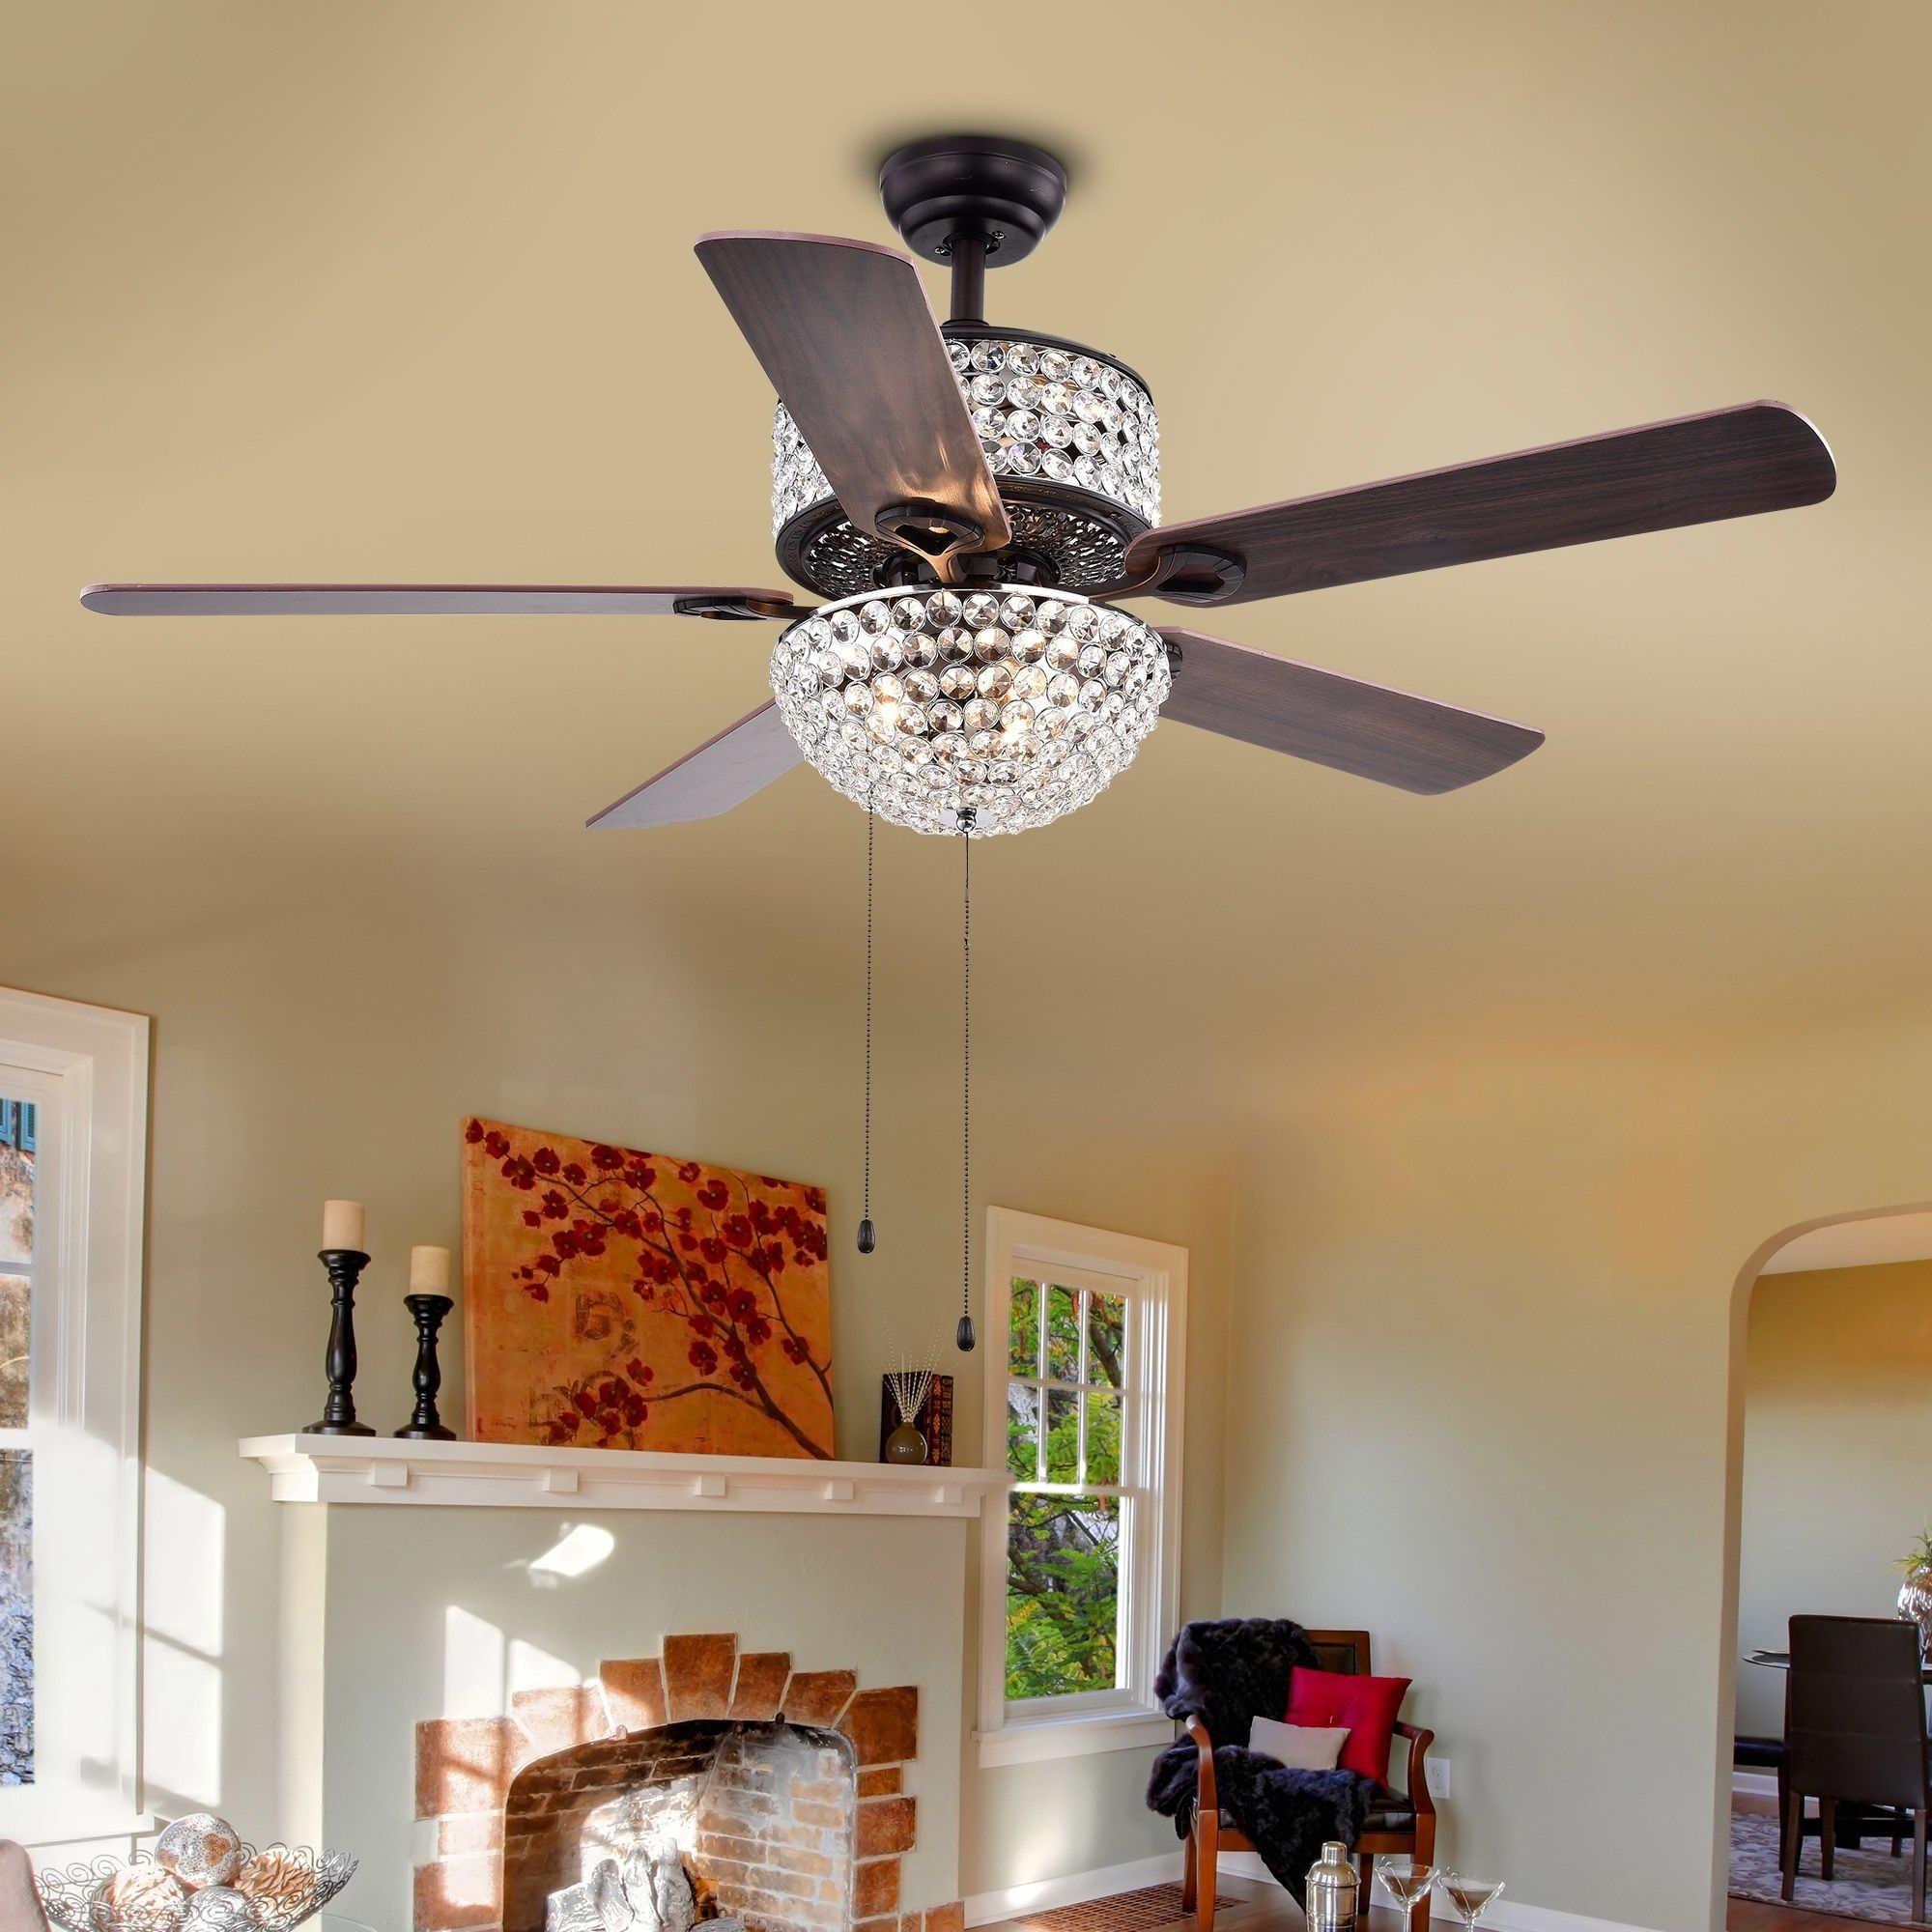 Warehouse of tiffany laure crystal 6 light 52 inch ceiling fan laure crystal 6 light 52 inch ceiling fan overstock shopping aloadofball Gallery